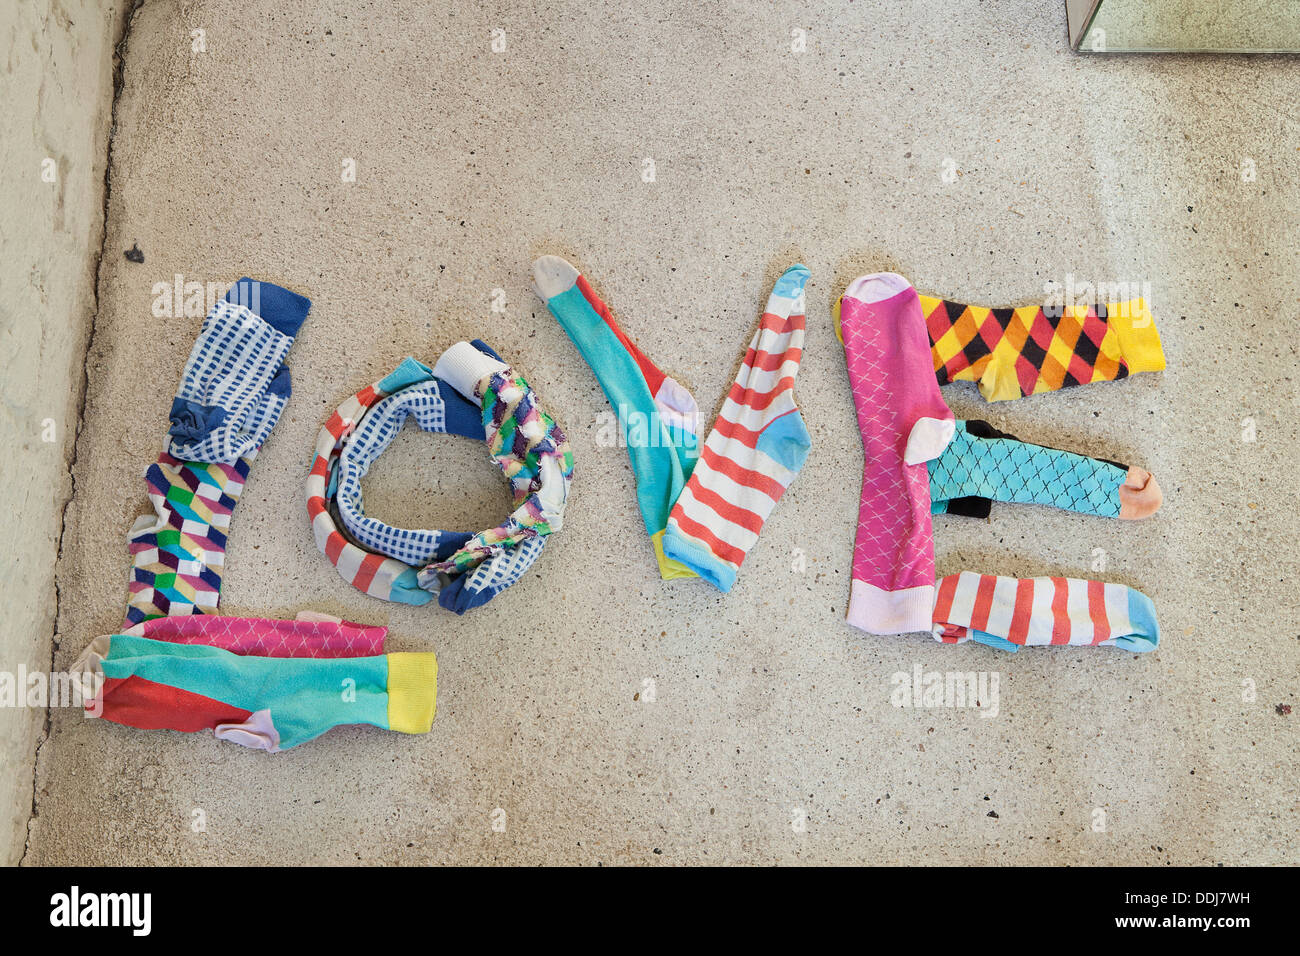 Text form of socks - Stock Image